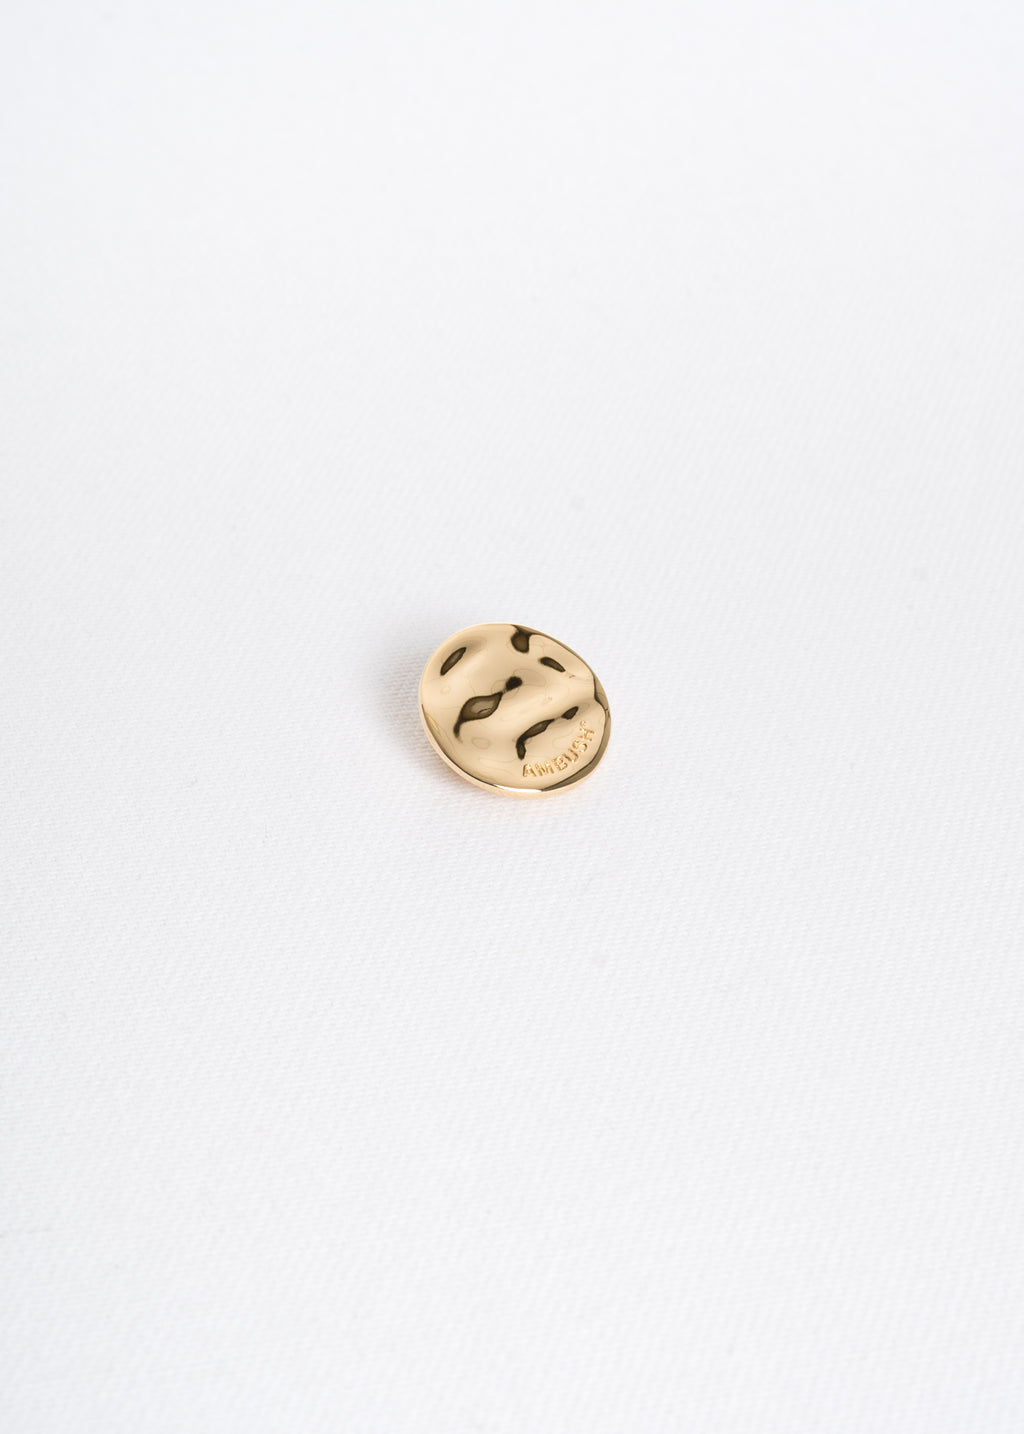 Gold Small Generic Pin Badge